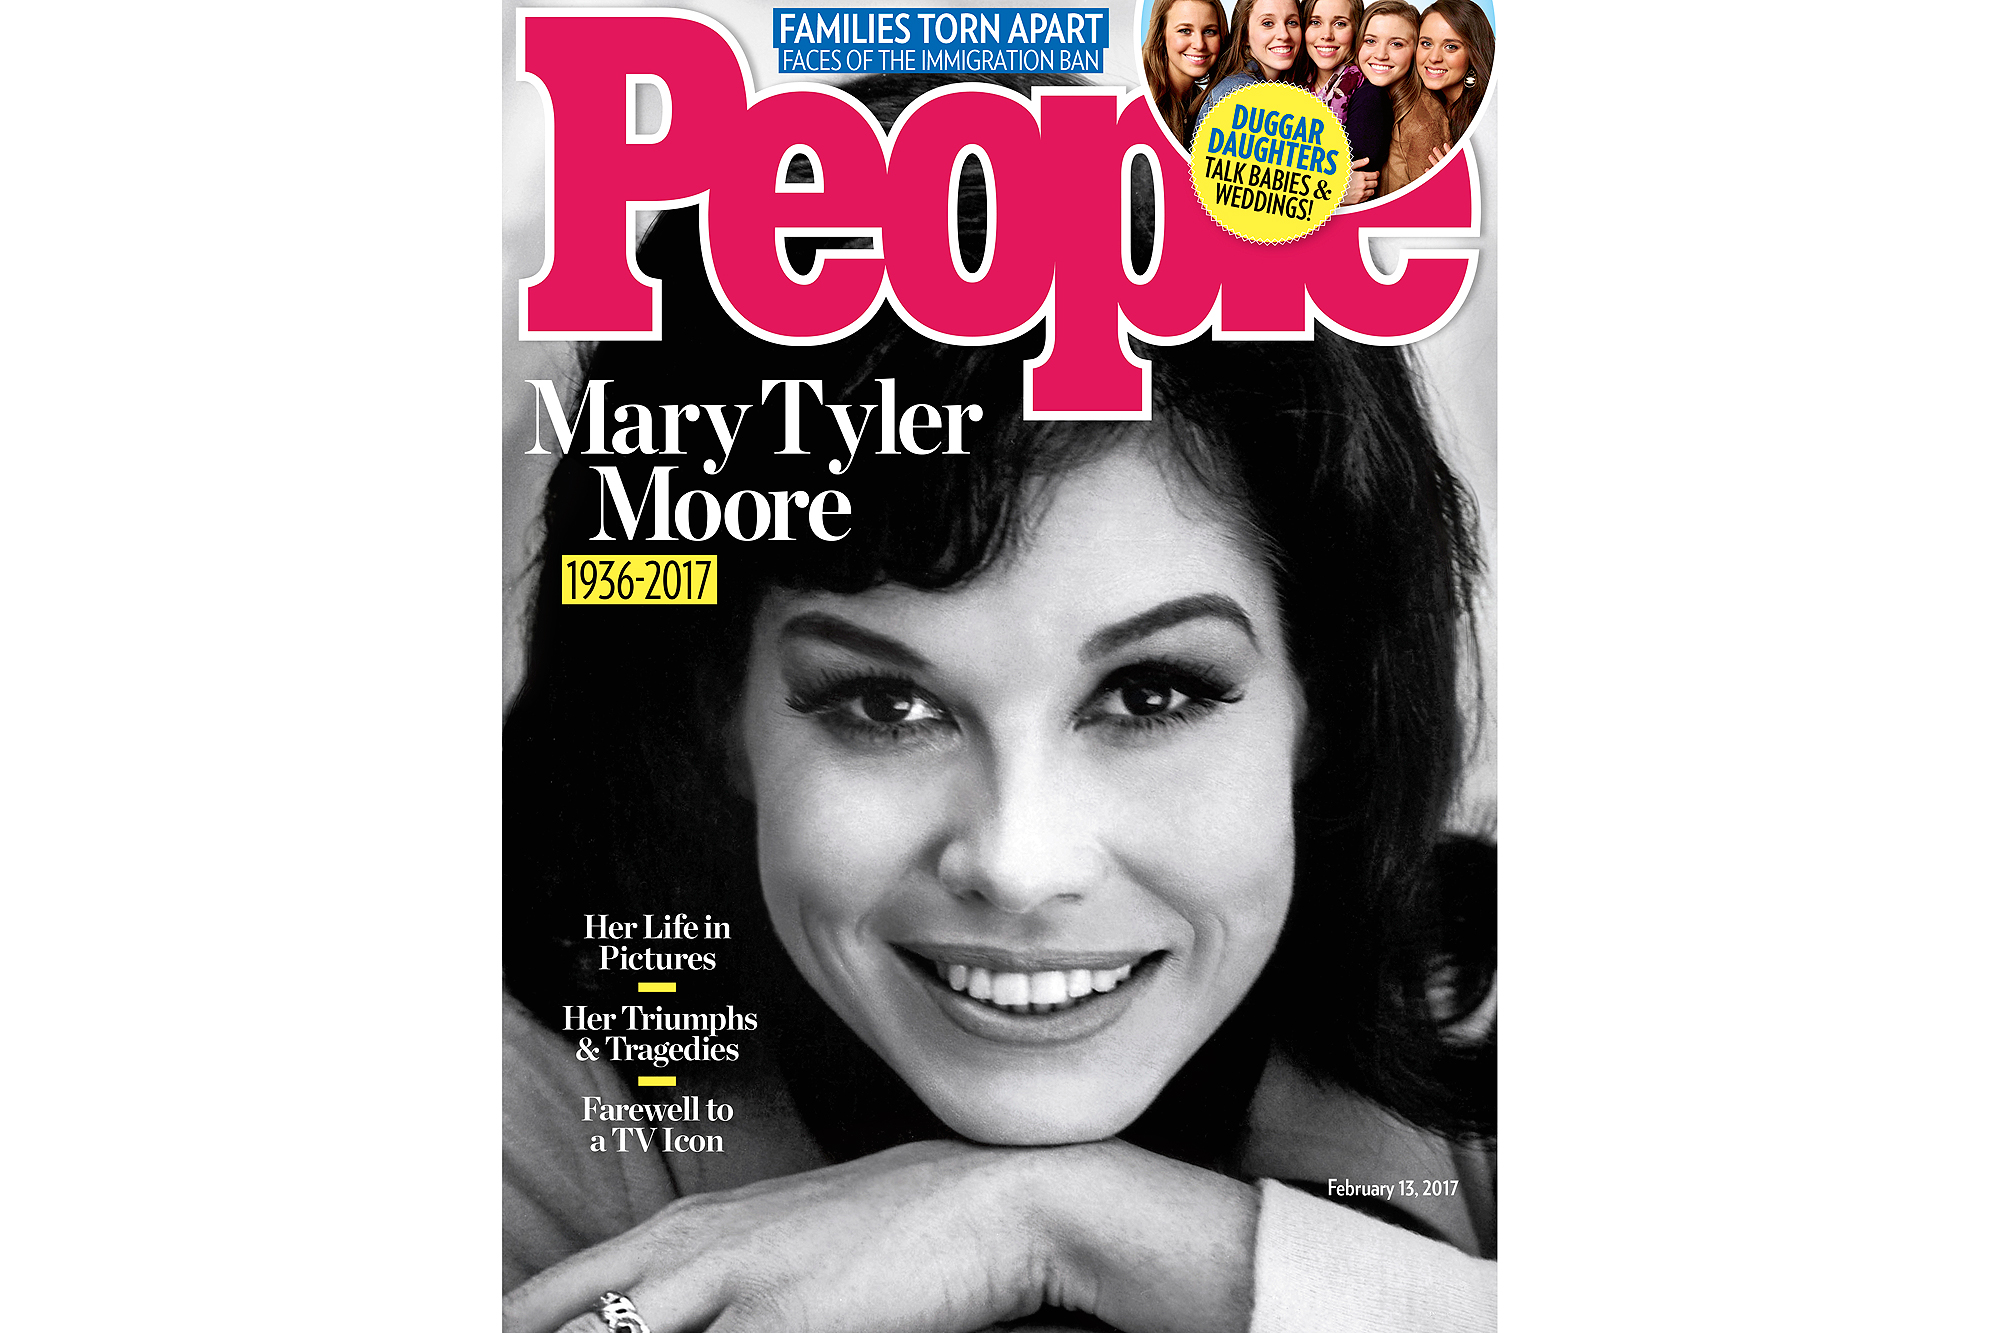 mary-tyler-moore-cover-2000x1333